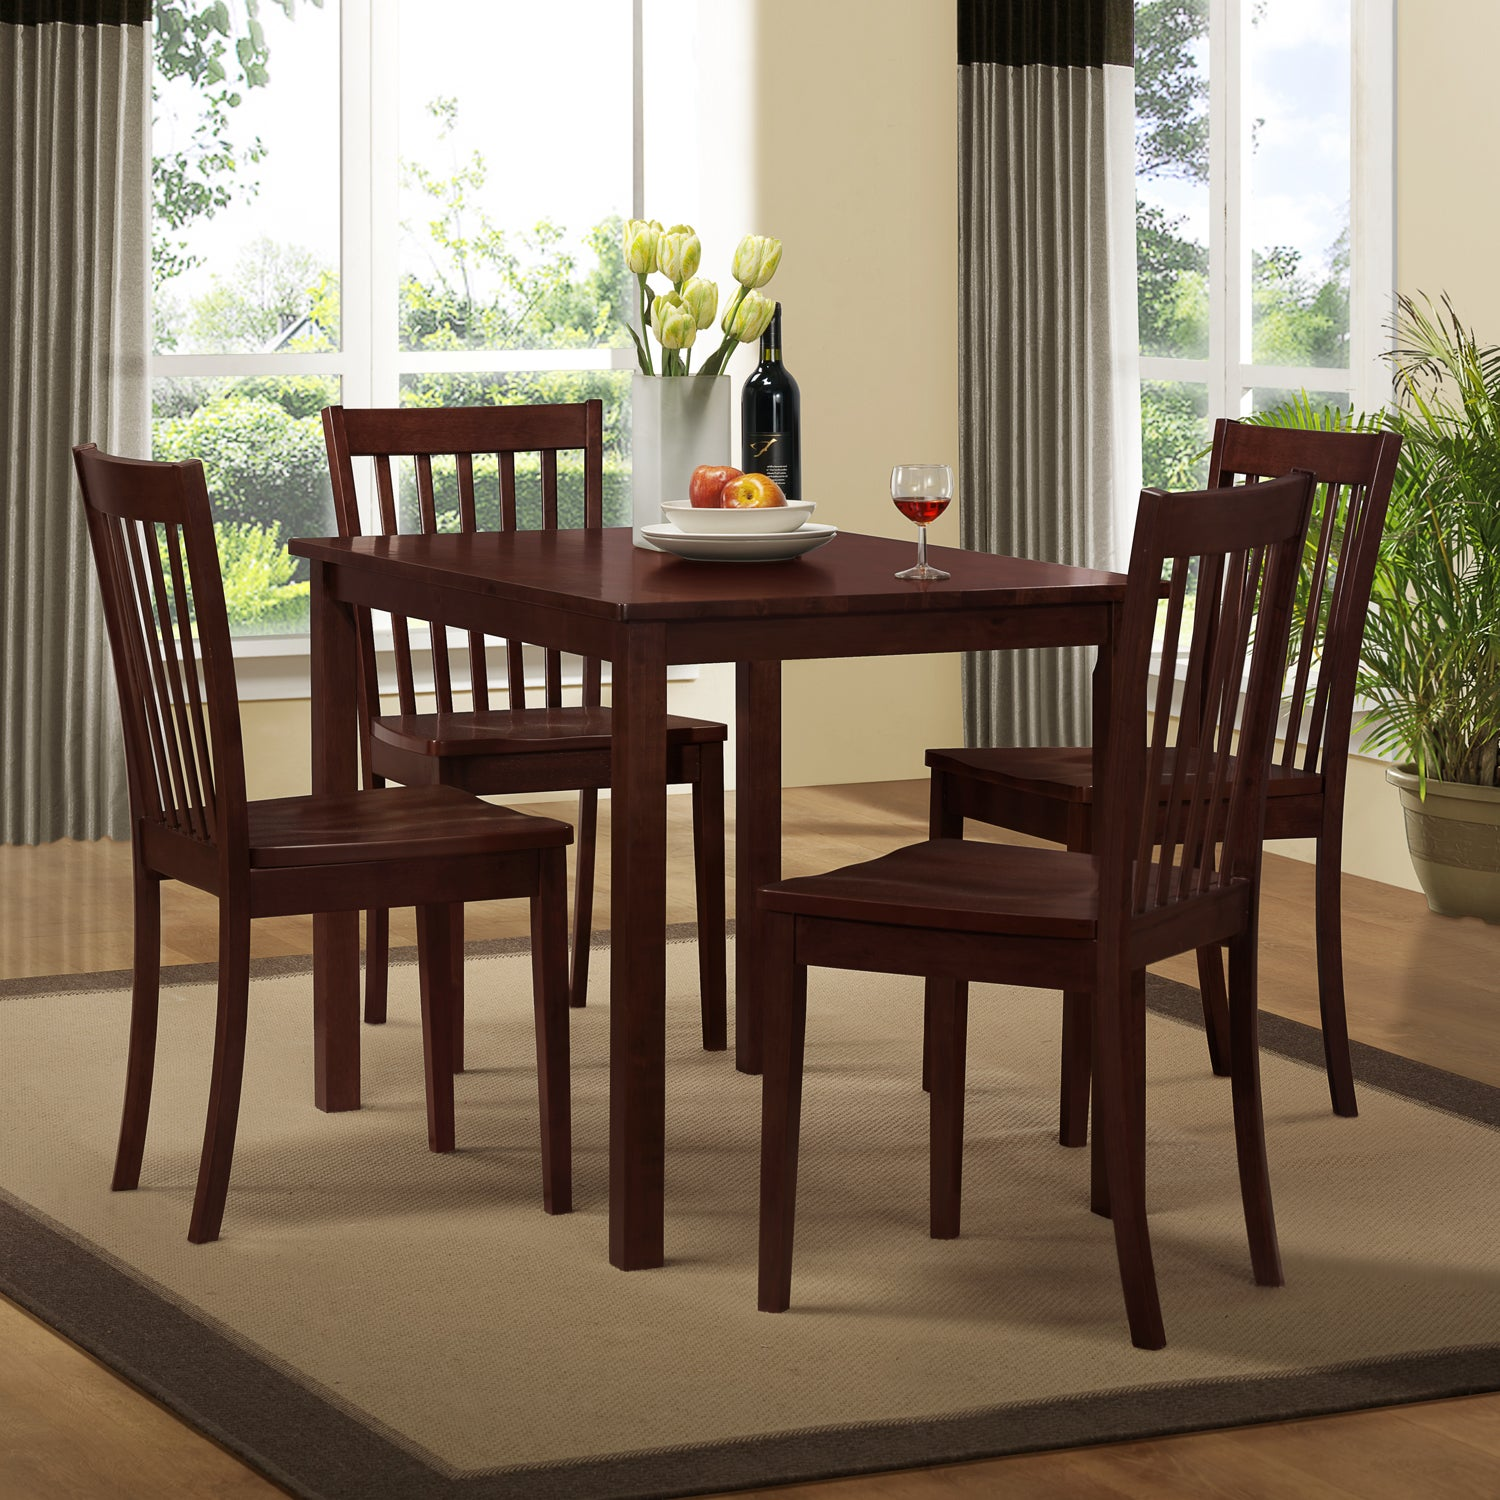 Norfolk 5-piece Slat Back Chair Dining Set